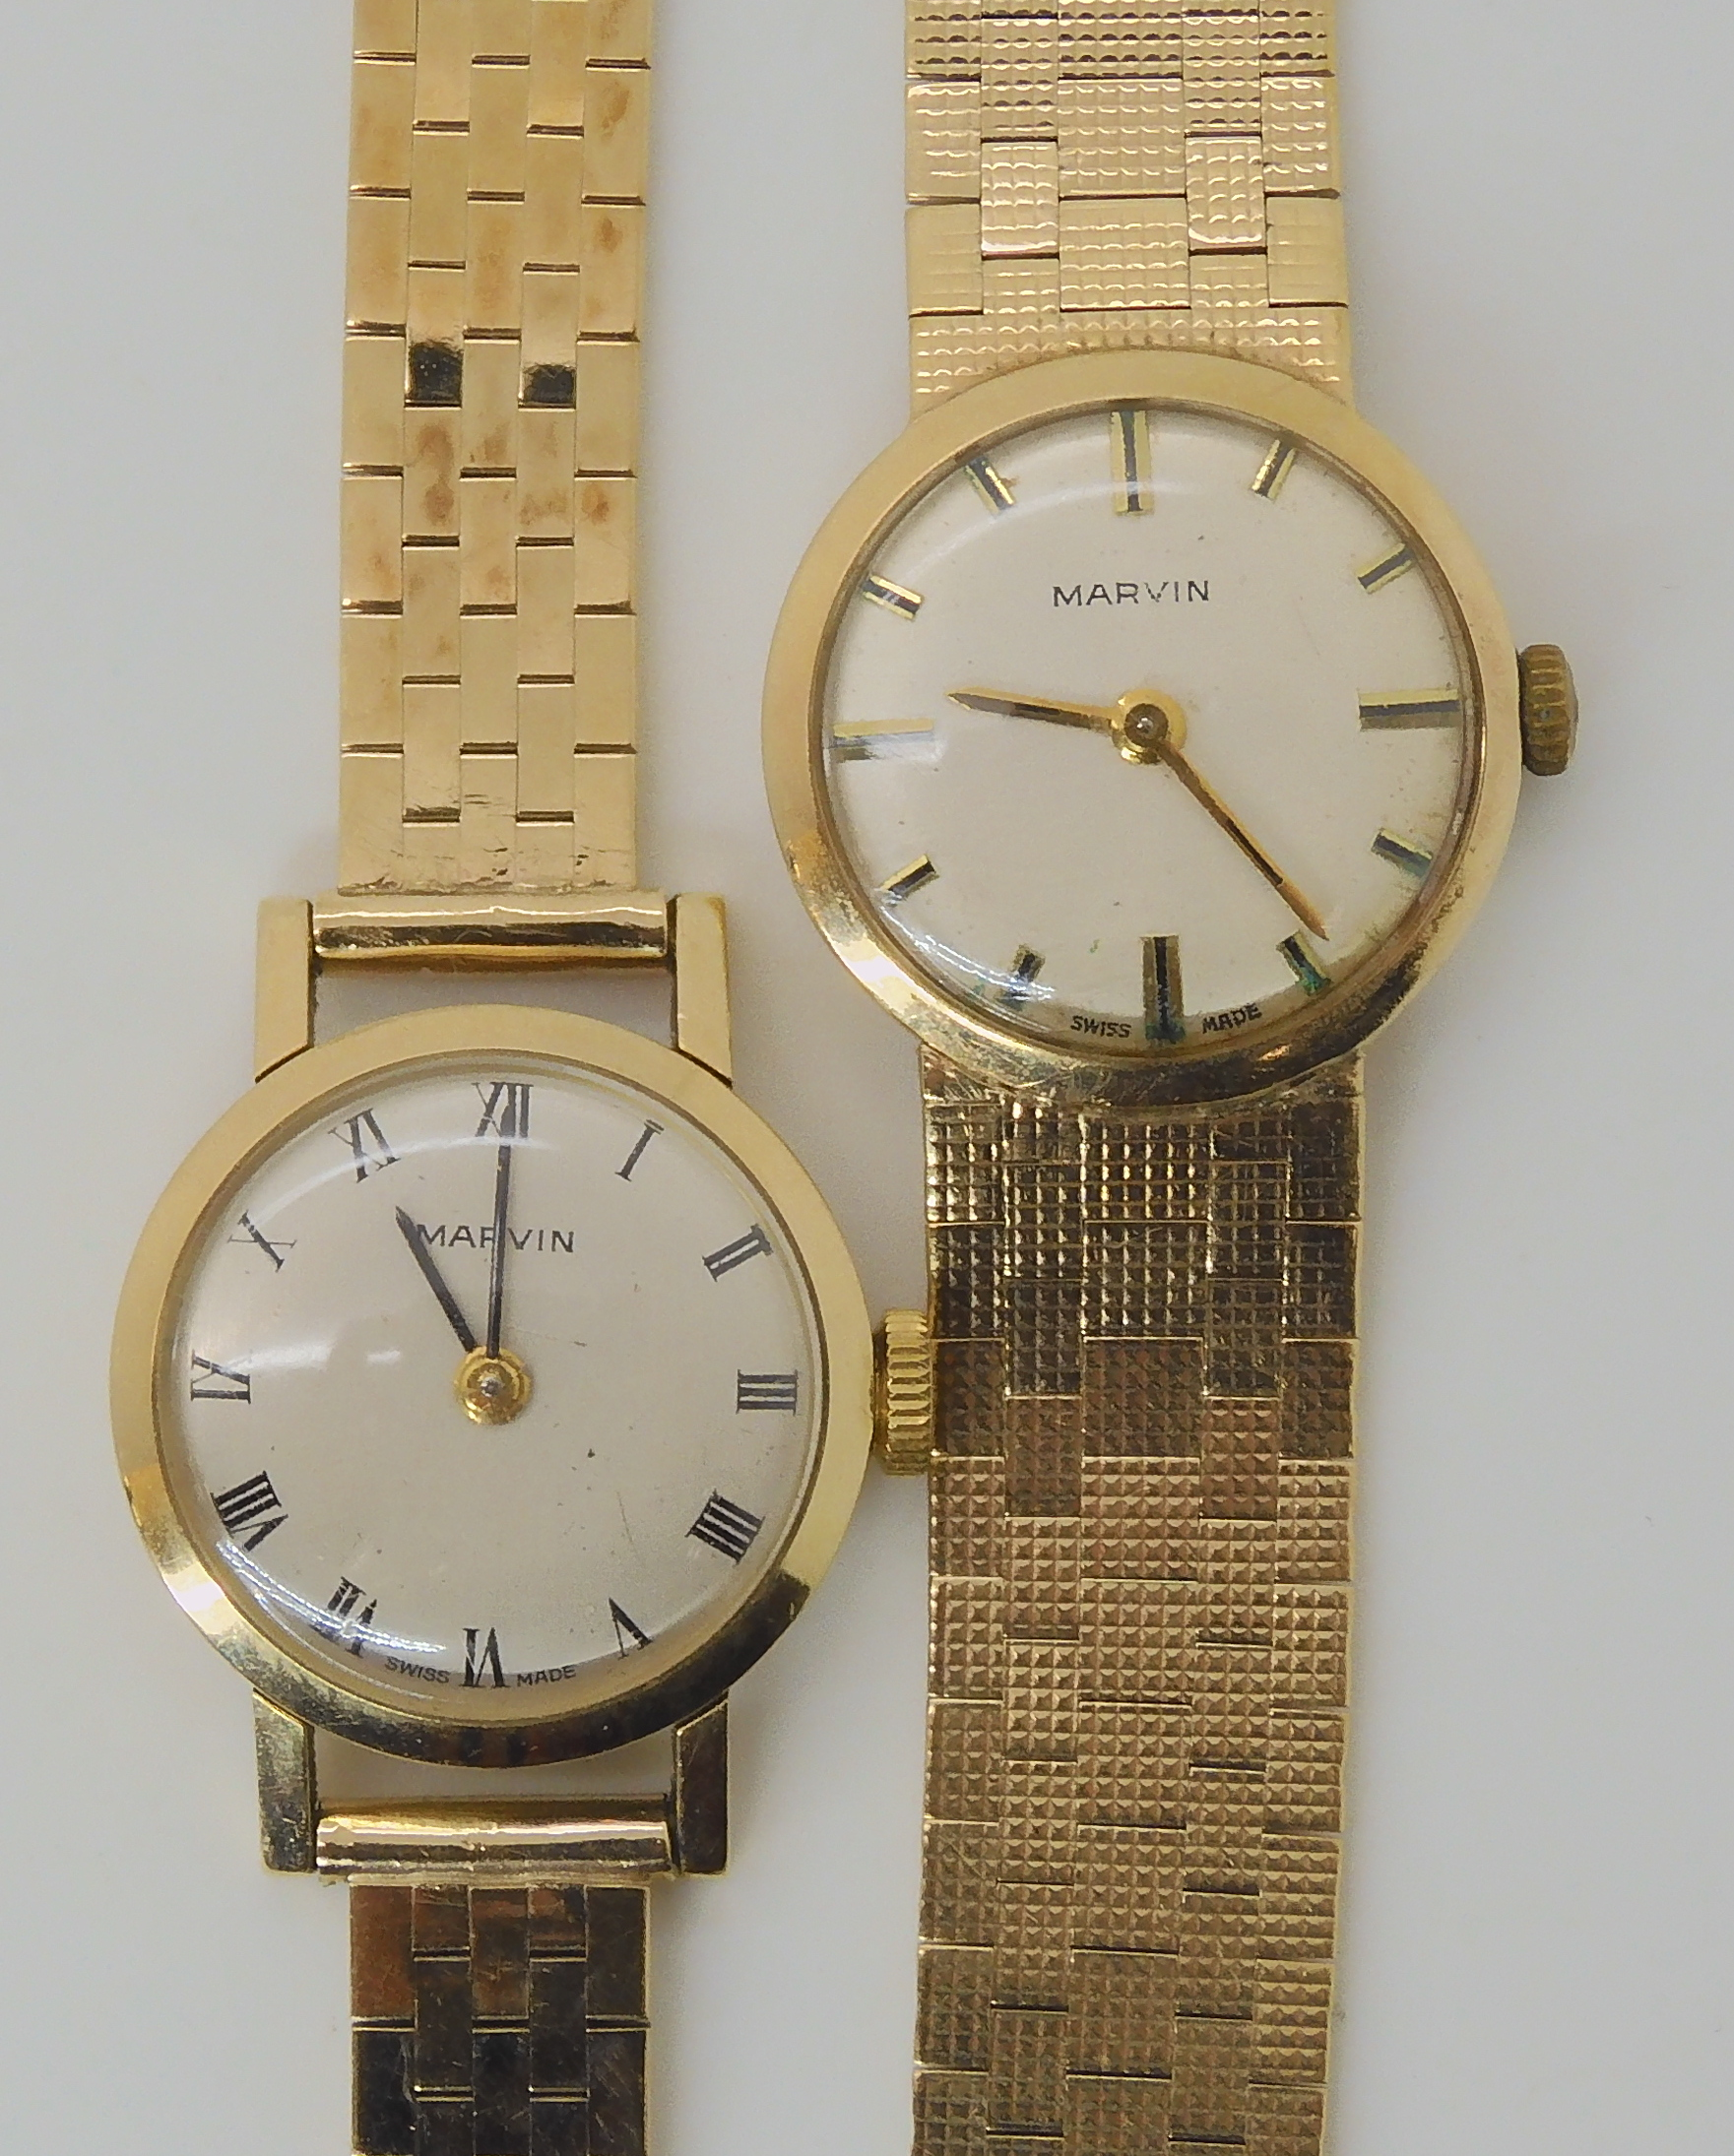 TWO 9CT GOLD LADIES MARVIN WATCHES the first with silvered dial black Roman numerals and baton